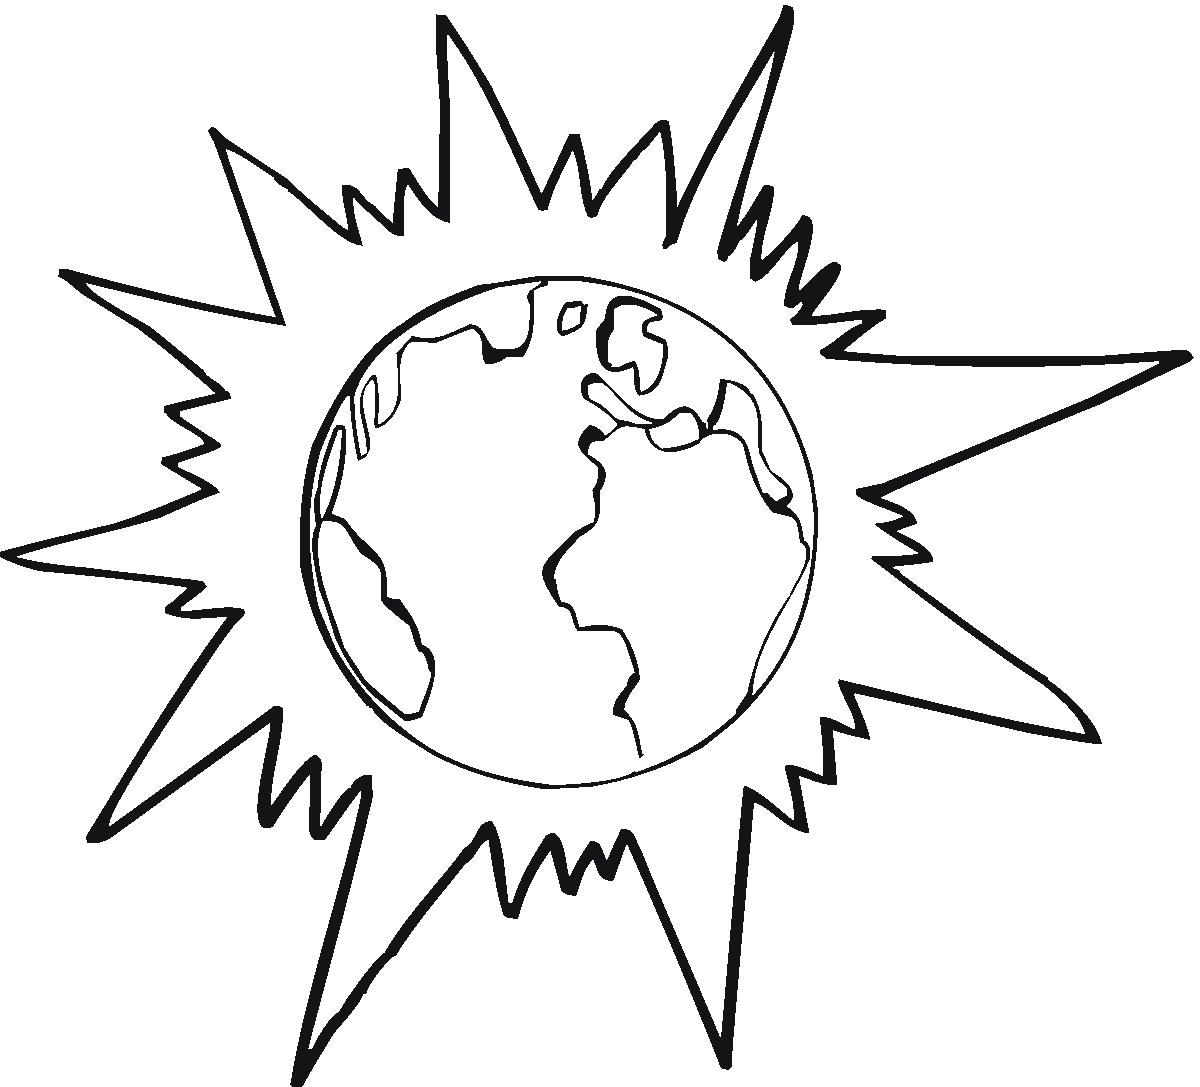 Earth behind The Sun coloring page